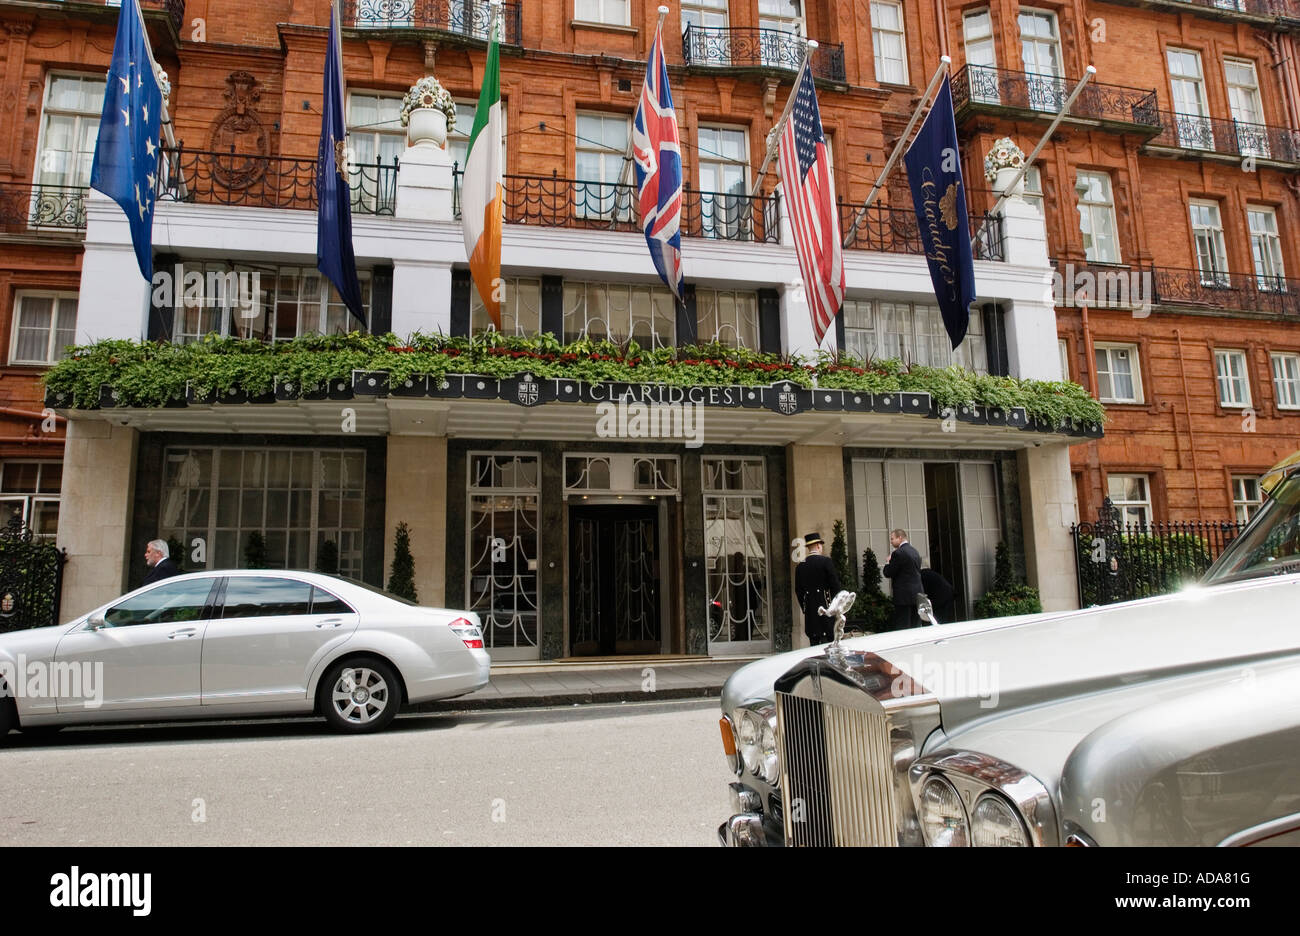 Cars parked in front of the hotel Claridges, 51 Brook Street, Mayfair, London, England - Stock Image